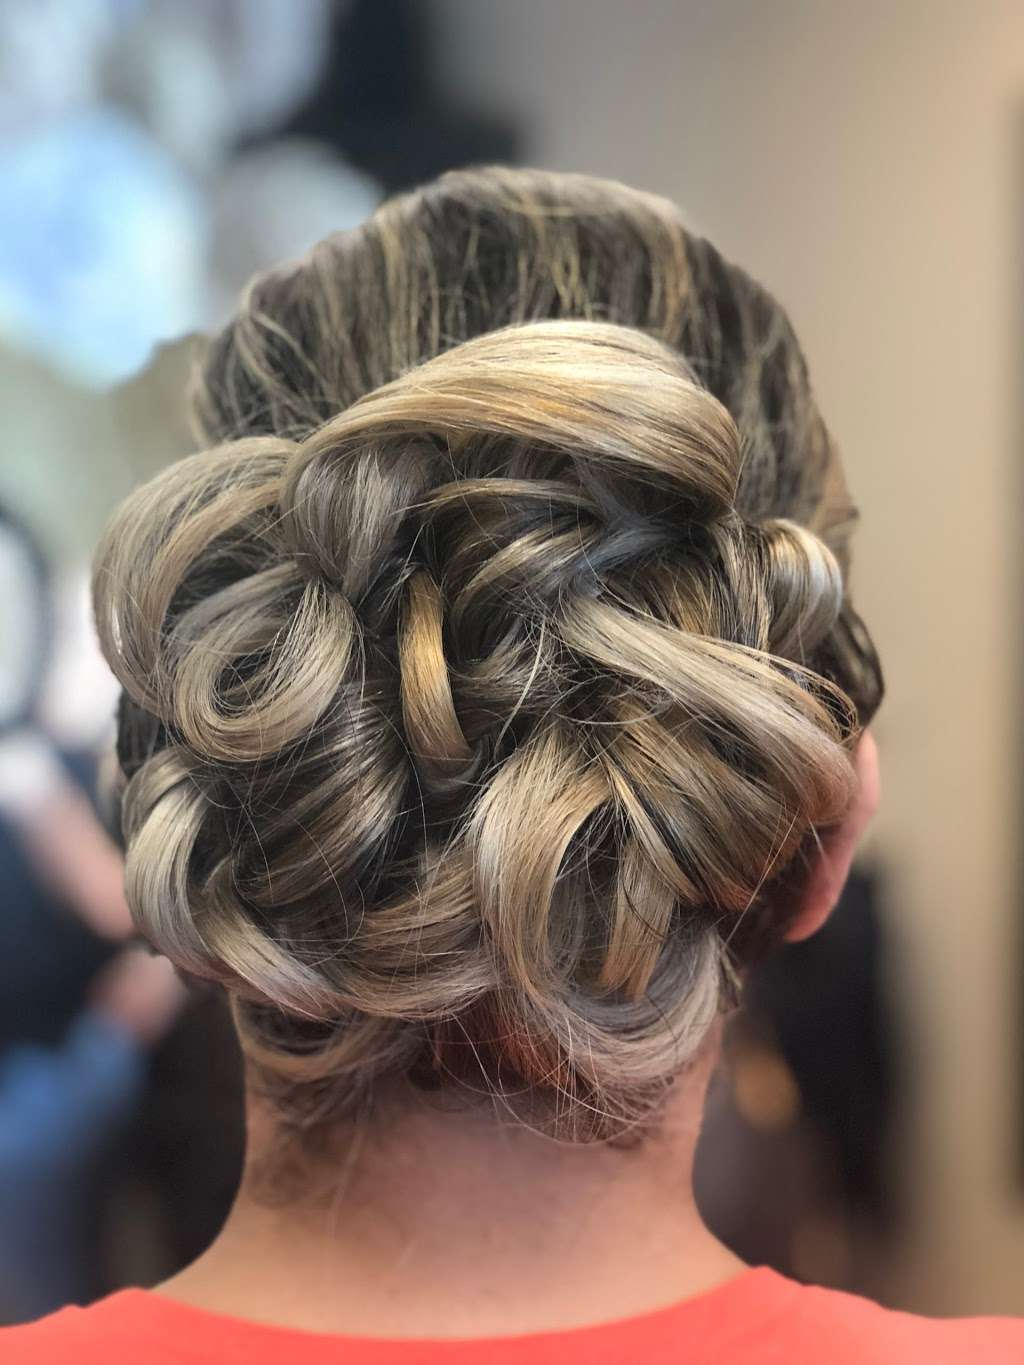 Amazing Beauty Studio - hair care  | Photo 10 of 10 | Address: 5231 Burke Rd #700, Pasadena, TX 77504, USA | Phone: (281) 272-6907